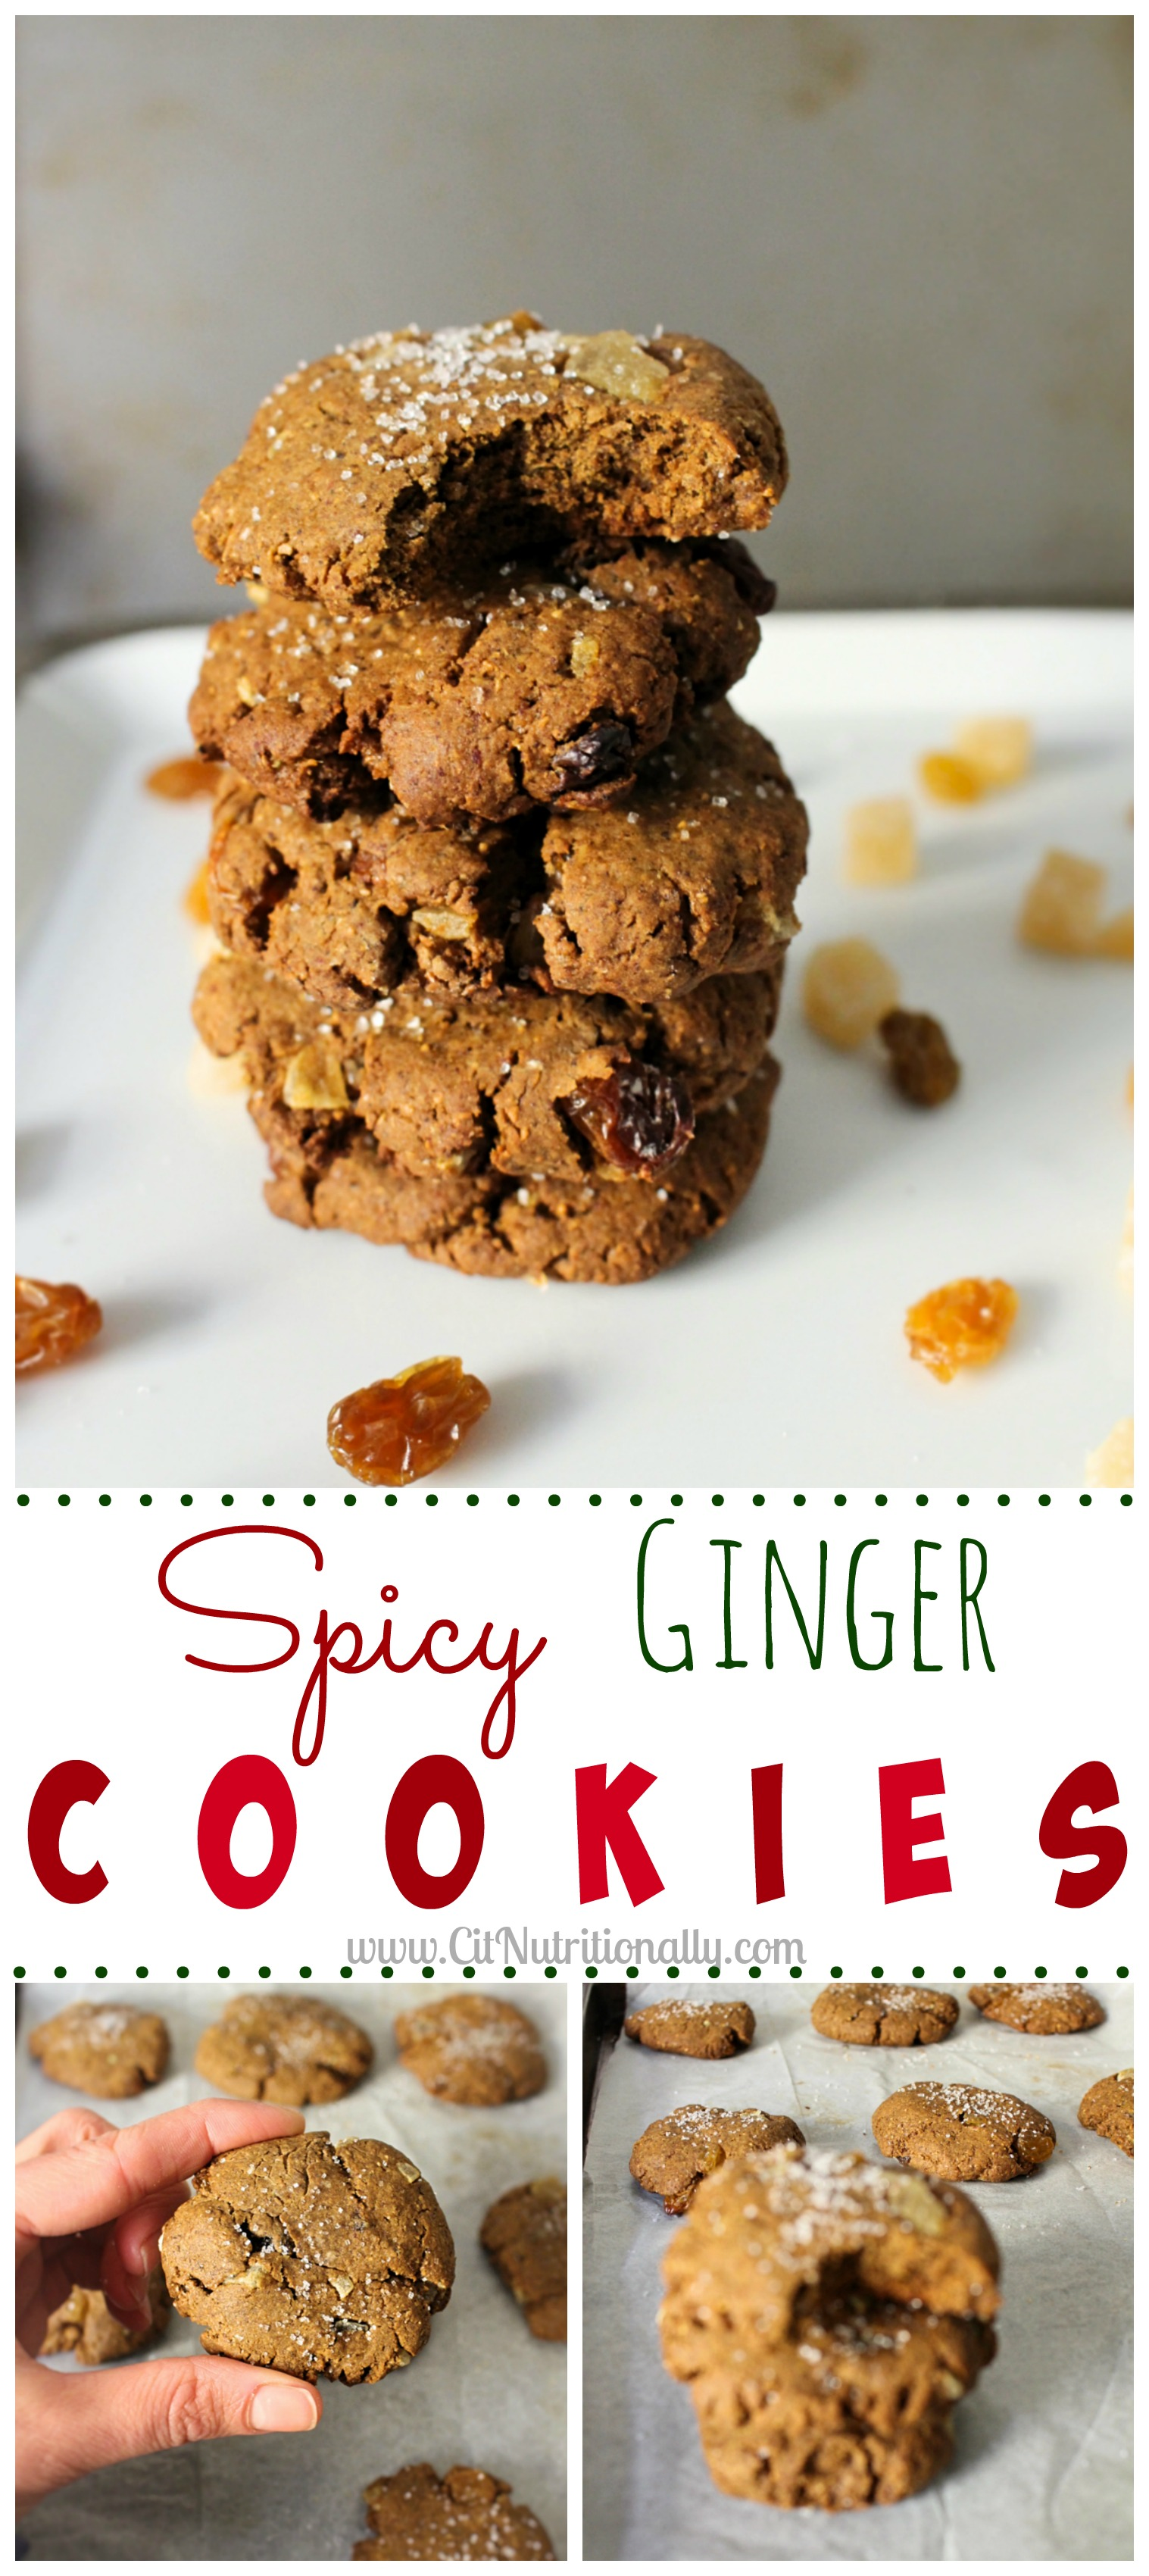 Spicy Ginger Cookies | C it Nutritionally #vegan option #nutfree #peanutfree #eggfree #dairyfree #soyfree #Christmas #dessert #baking